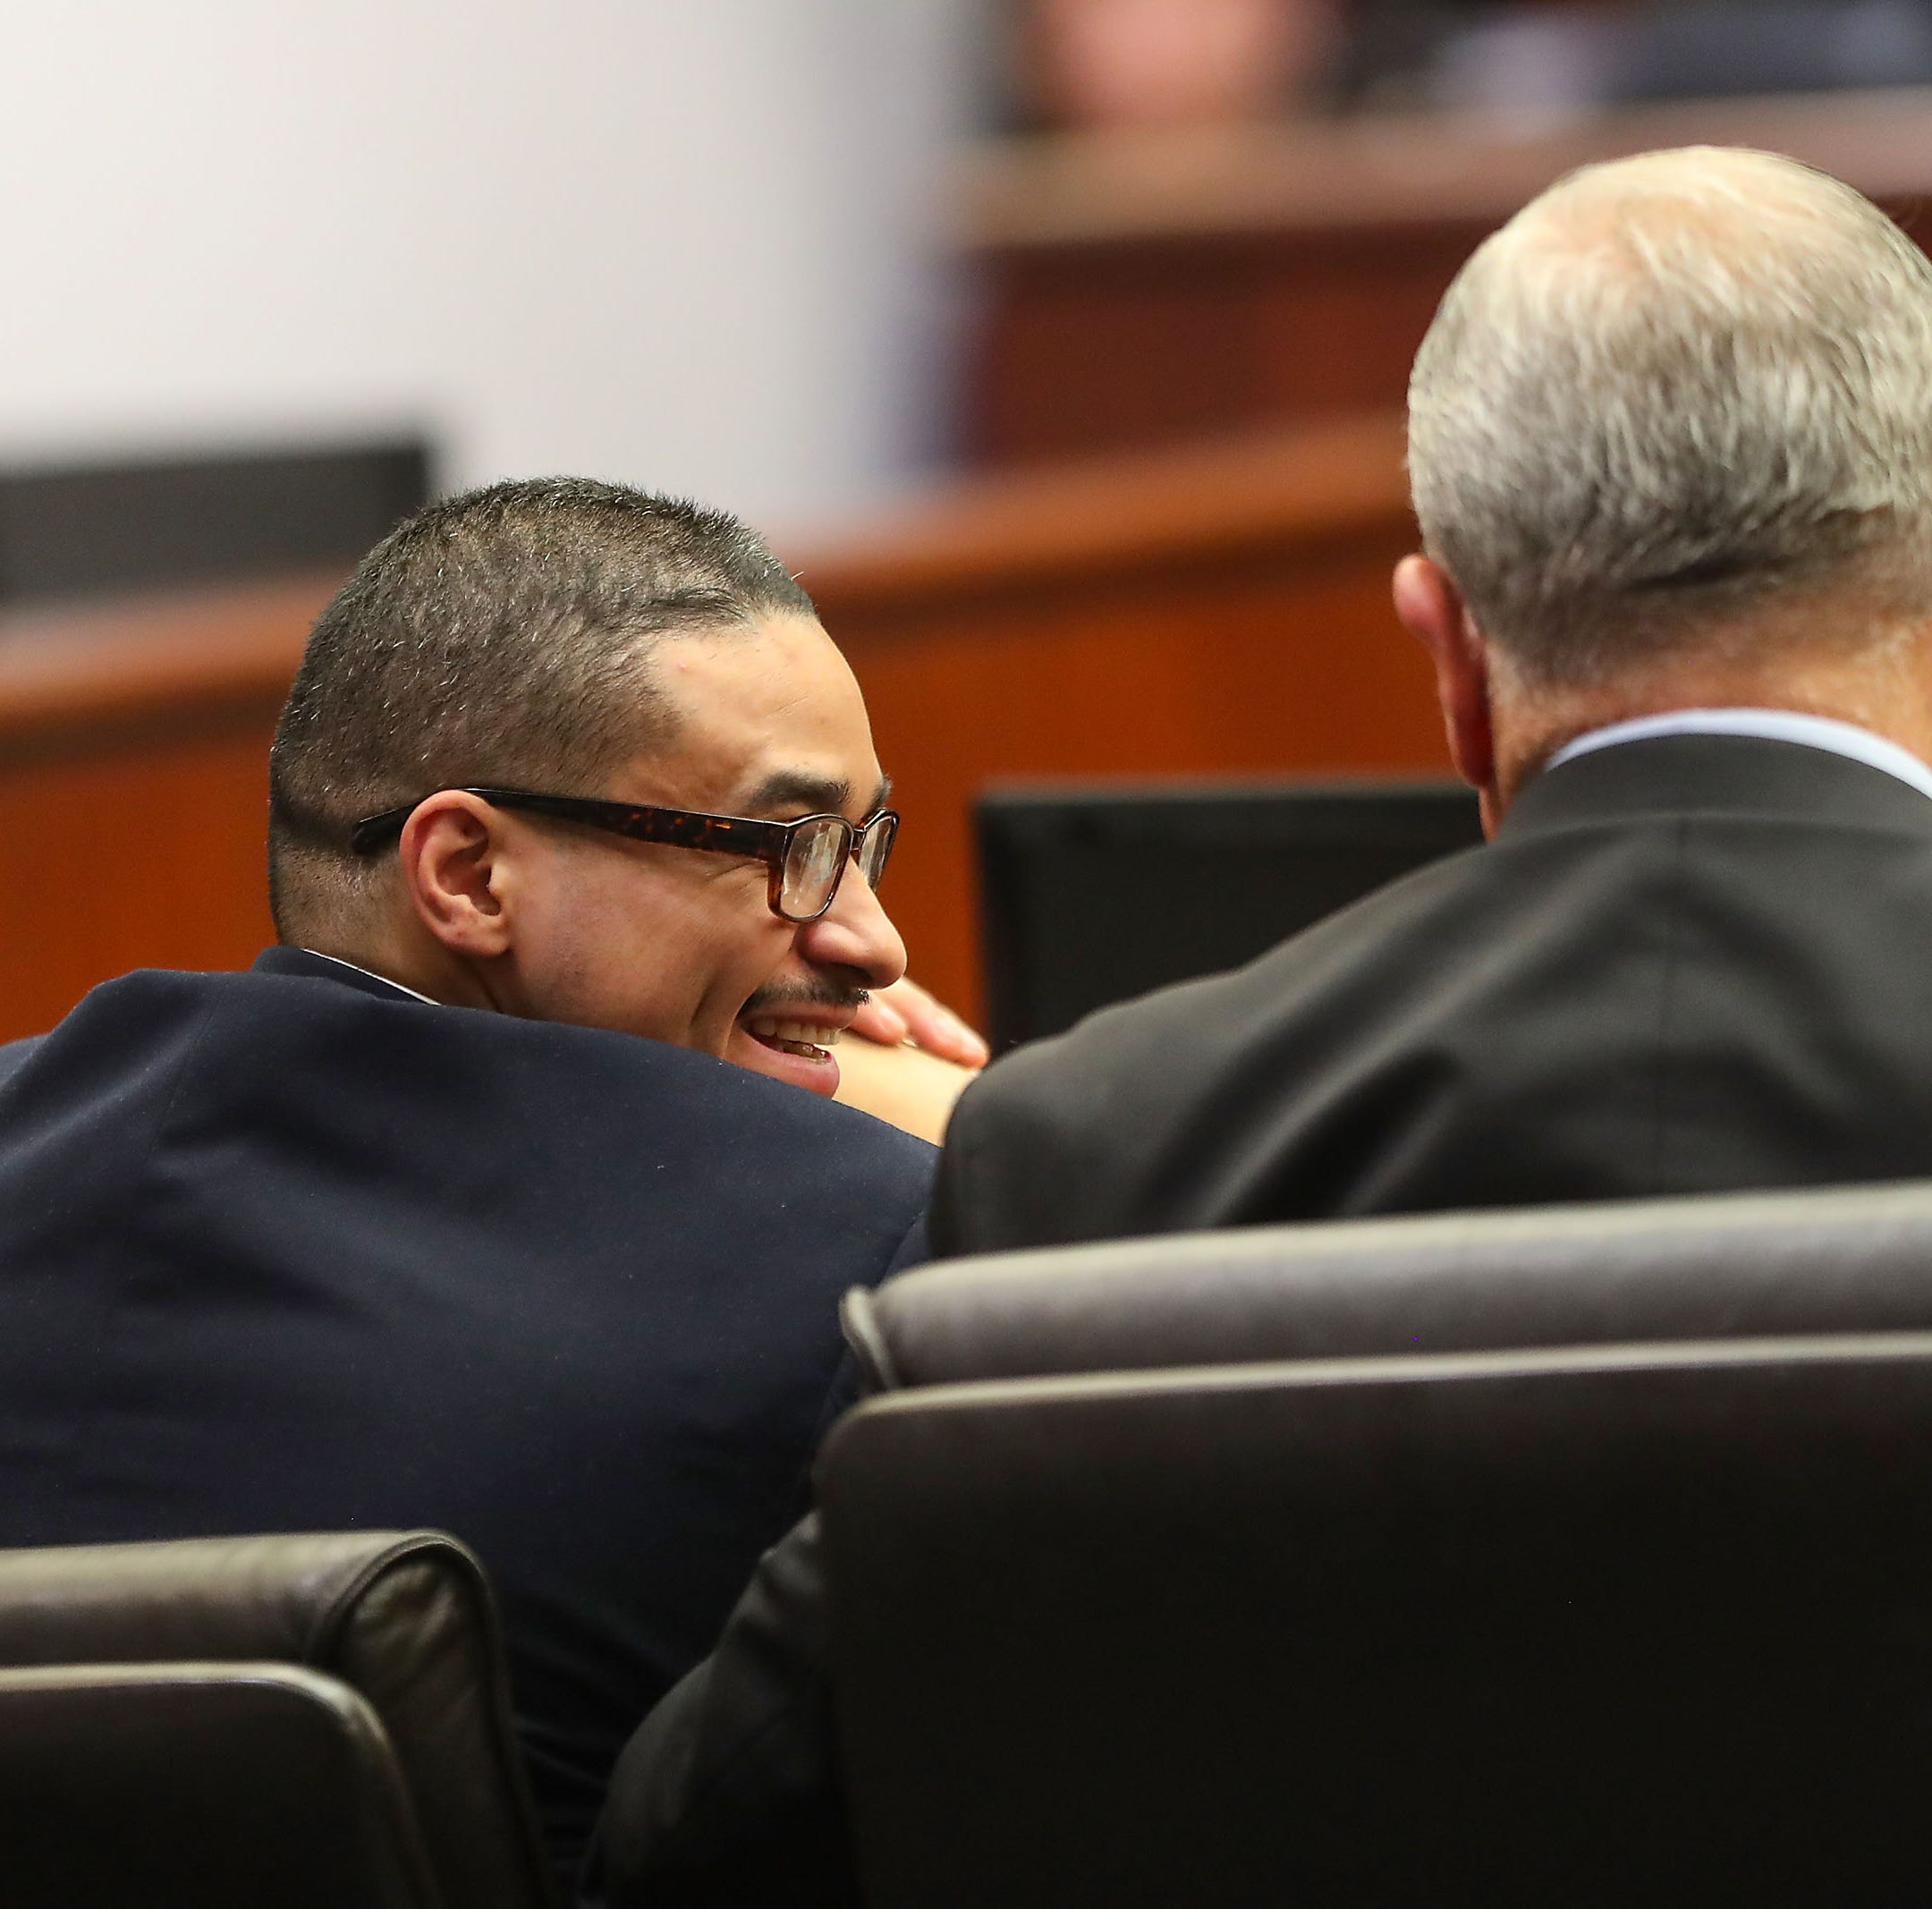 John Hernandez Felix found guilty on all counts in Palm Springs police murder trial